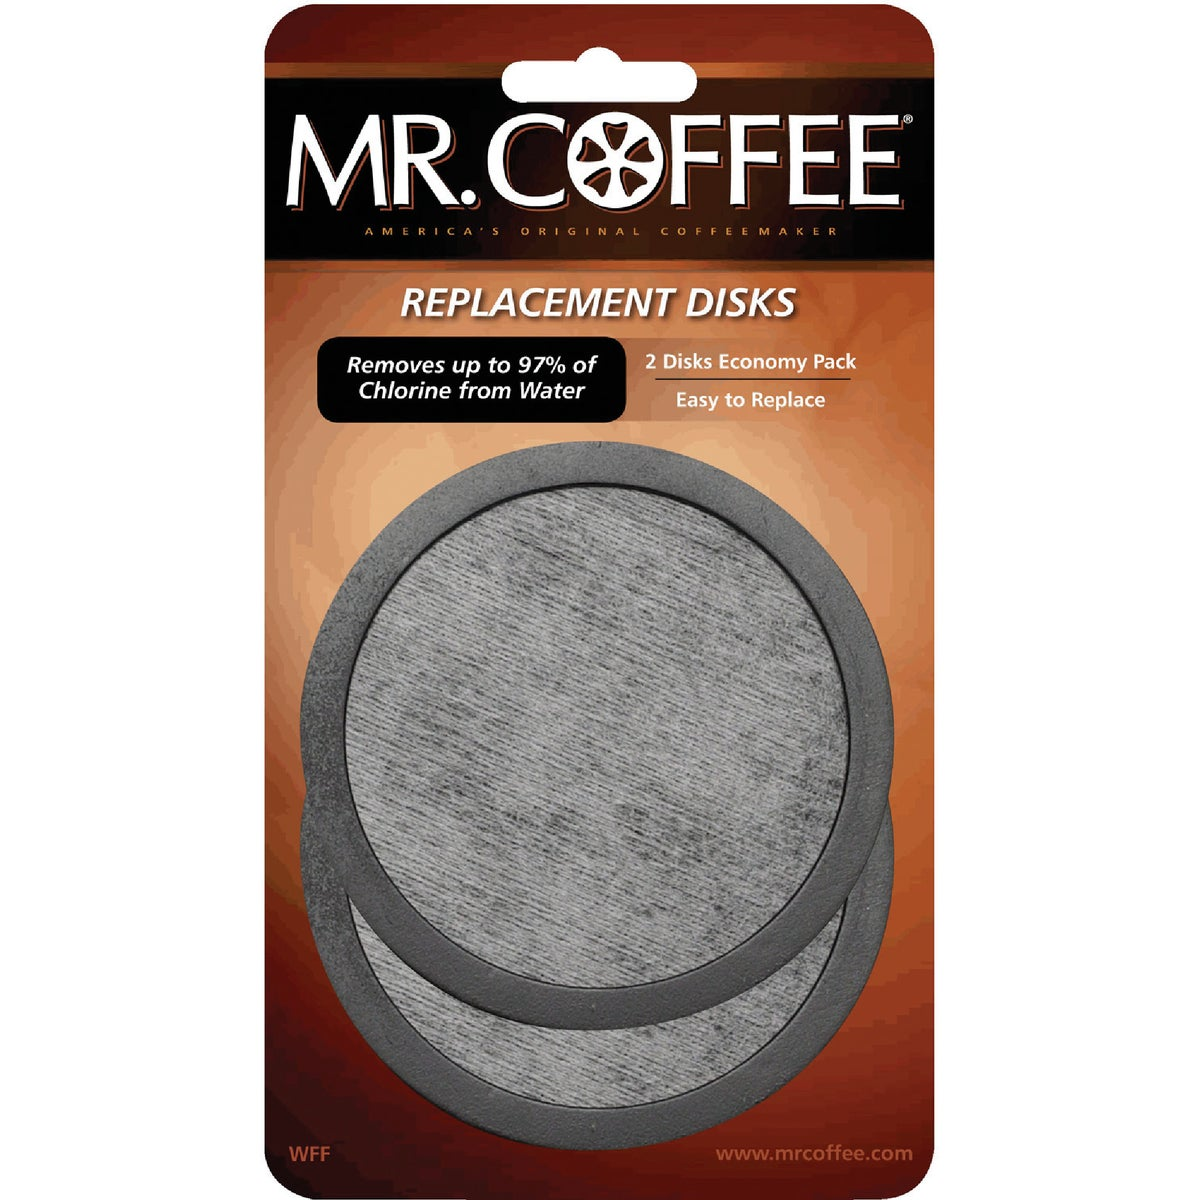 MR COFFEE FILTER DISC - WFFPDQ-10NP by Jarden Cs